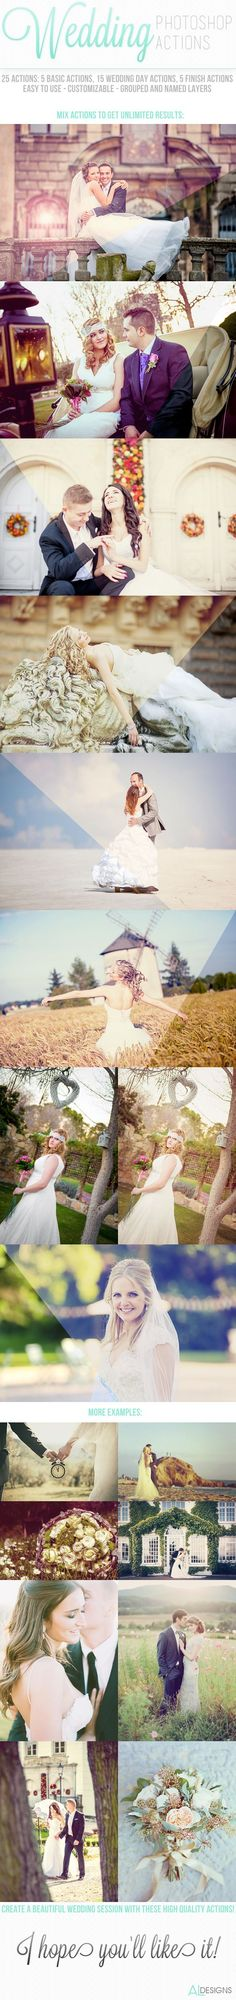 Wedding Photoshop Actions for Photoshop #photoeffect Download: http://graphicriver.net/item/wedding-photoshop-actions/11693121?ref=ksioks